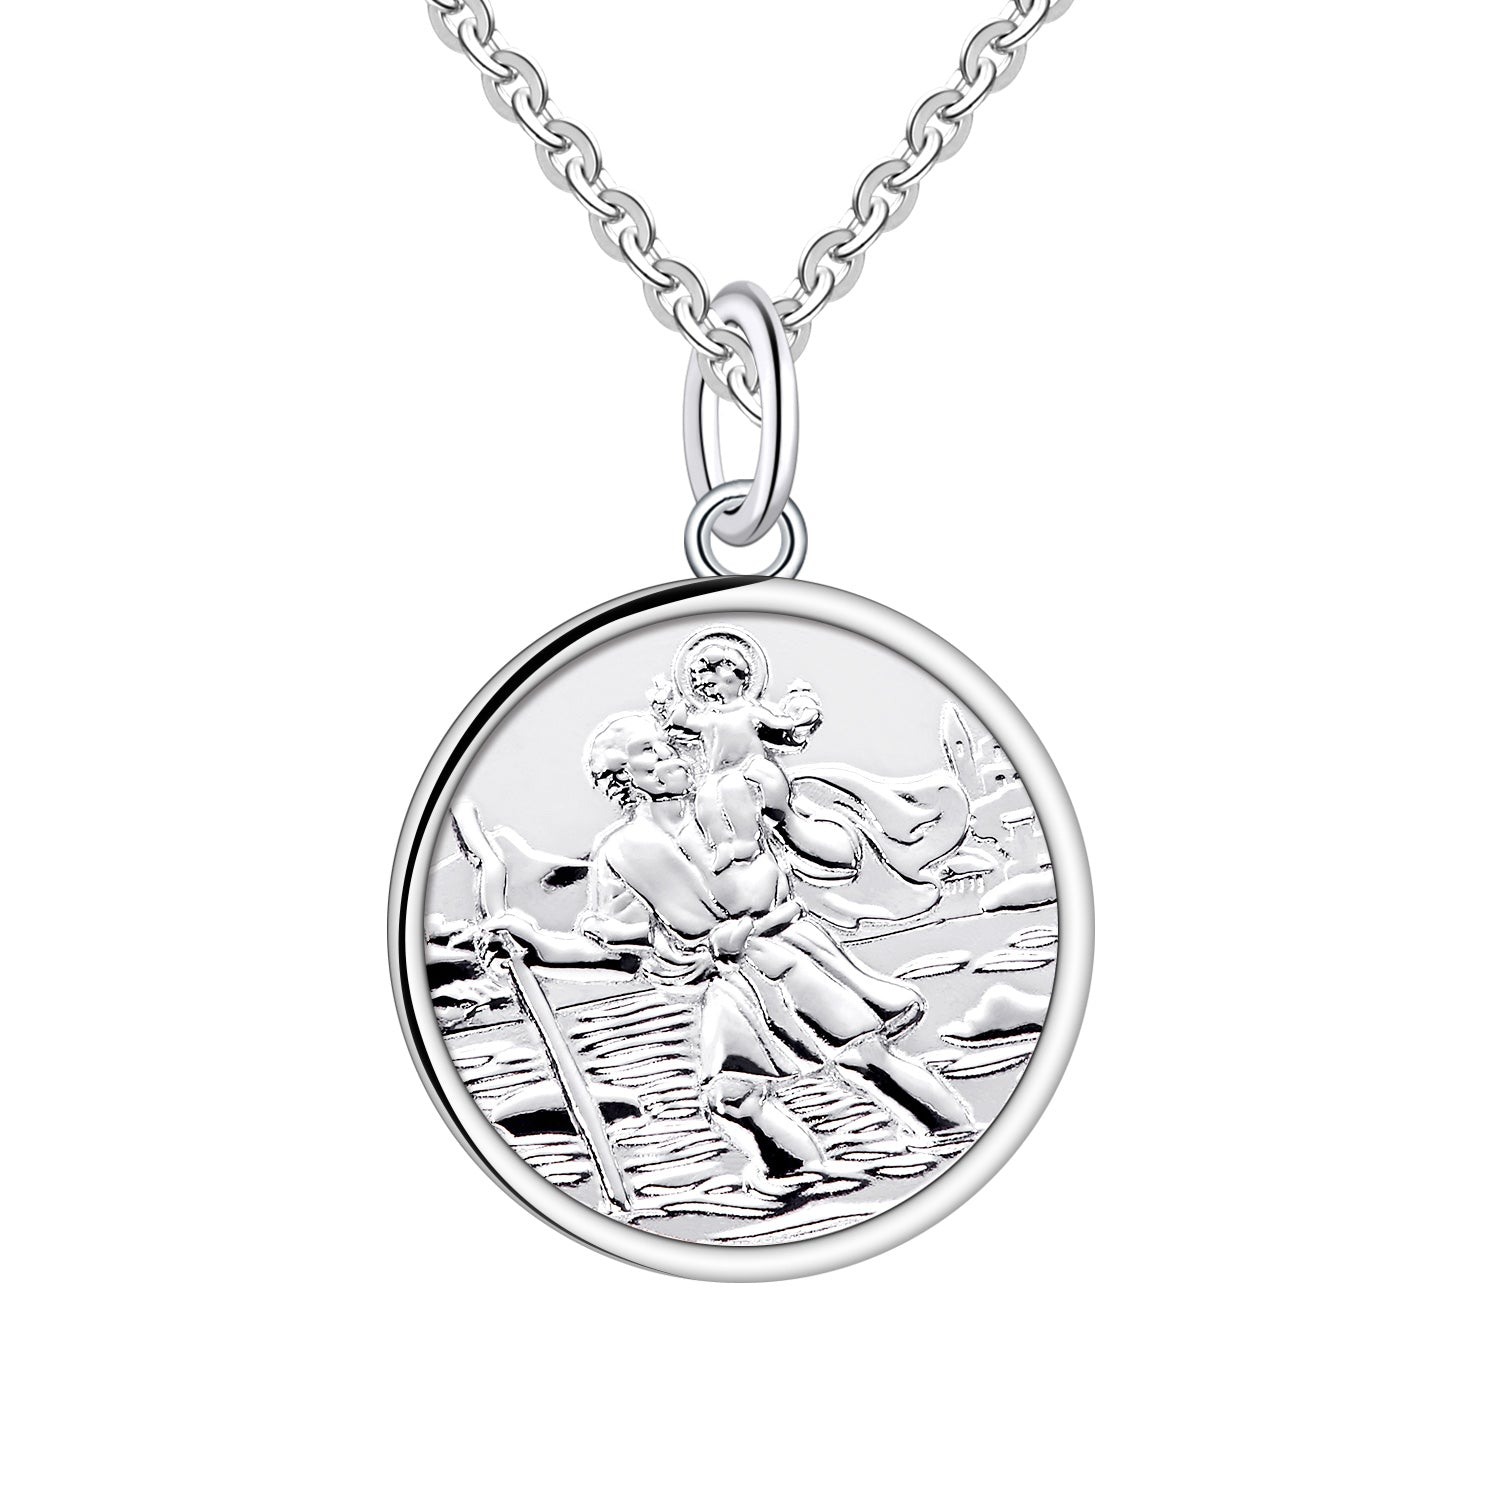 Farjary 925 Sterling Silver Saint Christopher Coin Pendant Necklace